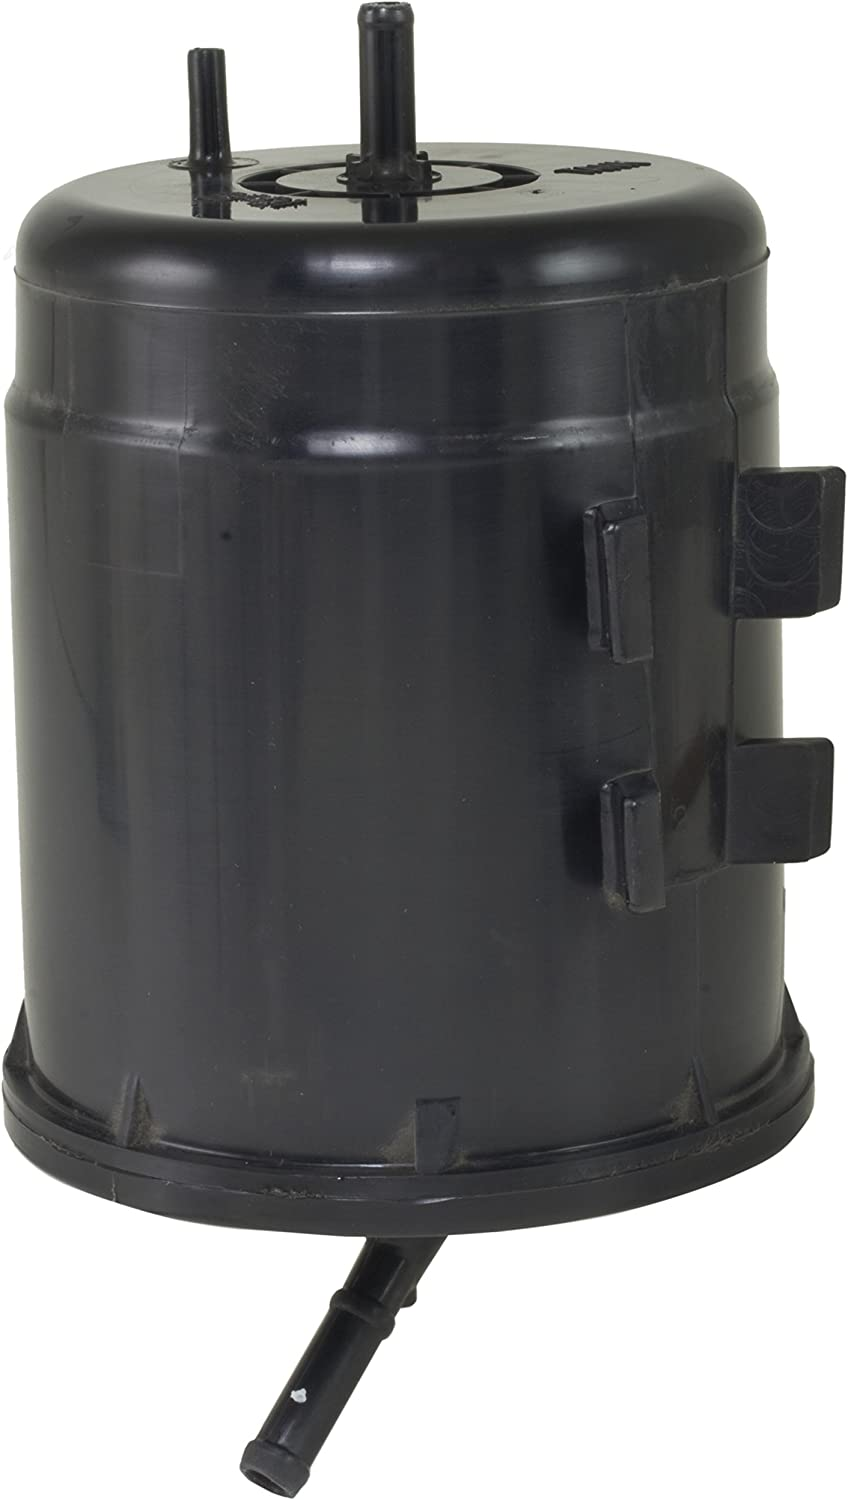 Replacement Parts Wells Vc4065 Vapor Canister Exhaust Emissions